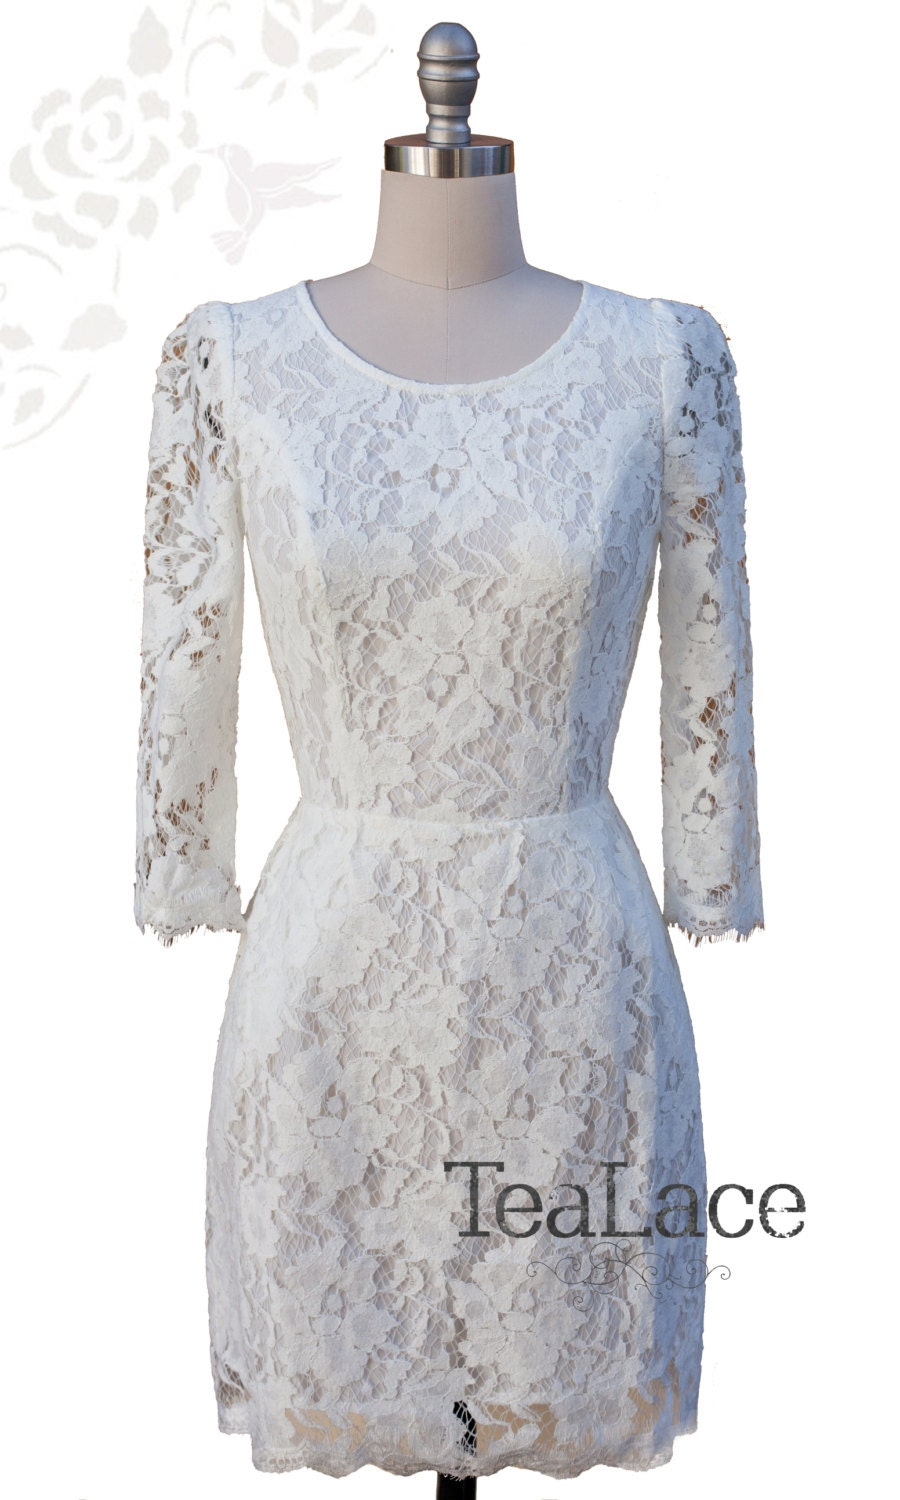 Allegra Lace Backless Vintage Inspired Dress Long White. Black Wedding Dresses With Red. Mermaid Wedding Dresses Cost. Chiffon Hippie Wedding Dresses. Wedding Dress Short Sheath. Wedding Dresses Mermaid Lace. Bohemian Wedding Dresses Auckland. Boho Chic Wedding Guest Dresses. Blue Dresses For Wedding